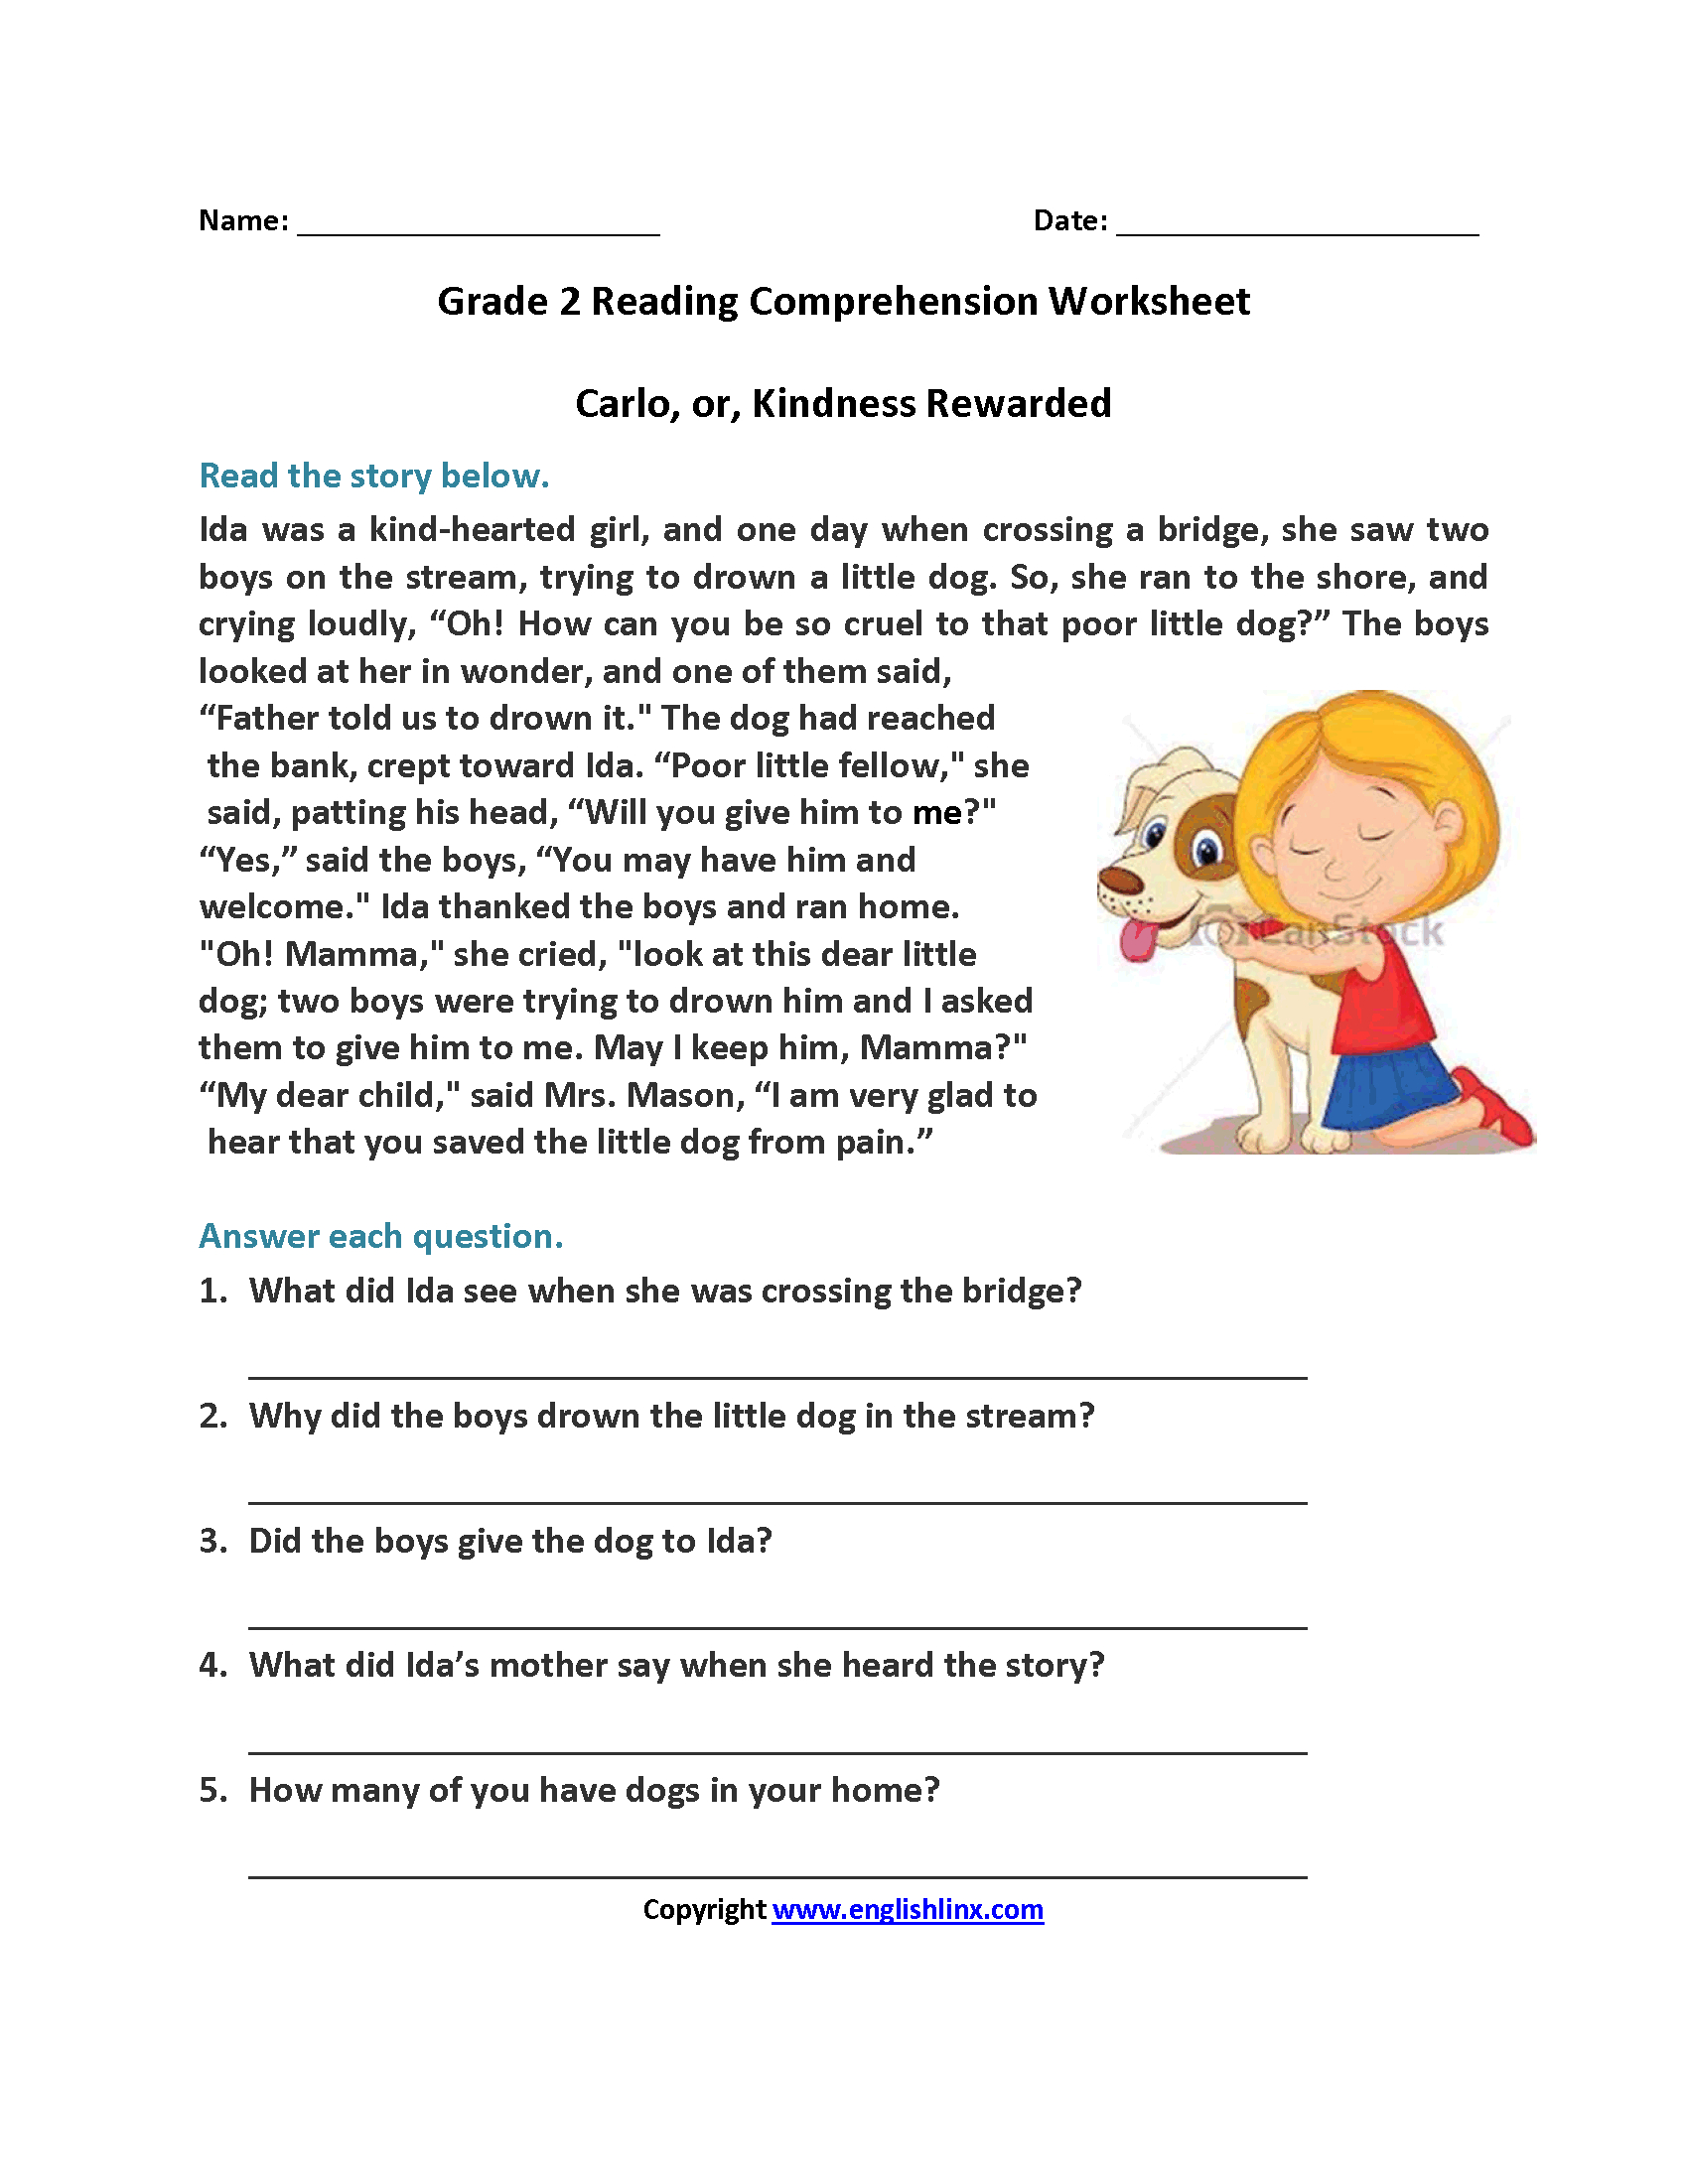 Reading Comprehension Practice Worksheet